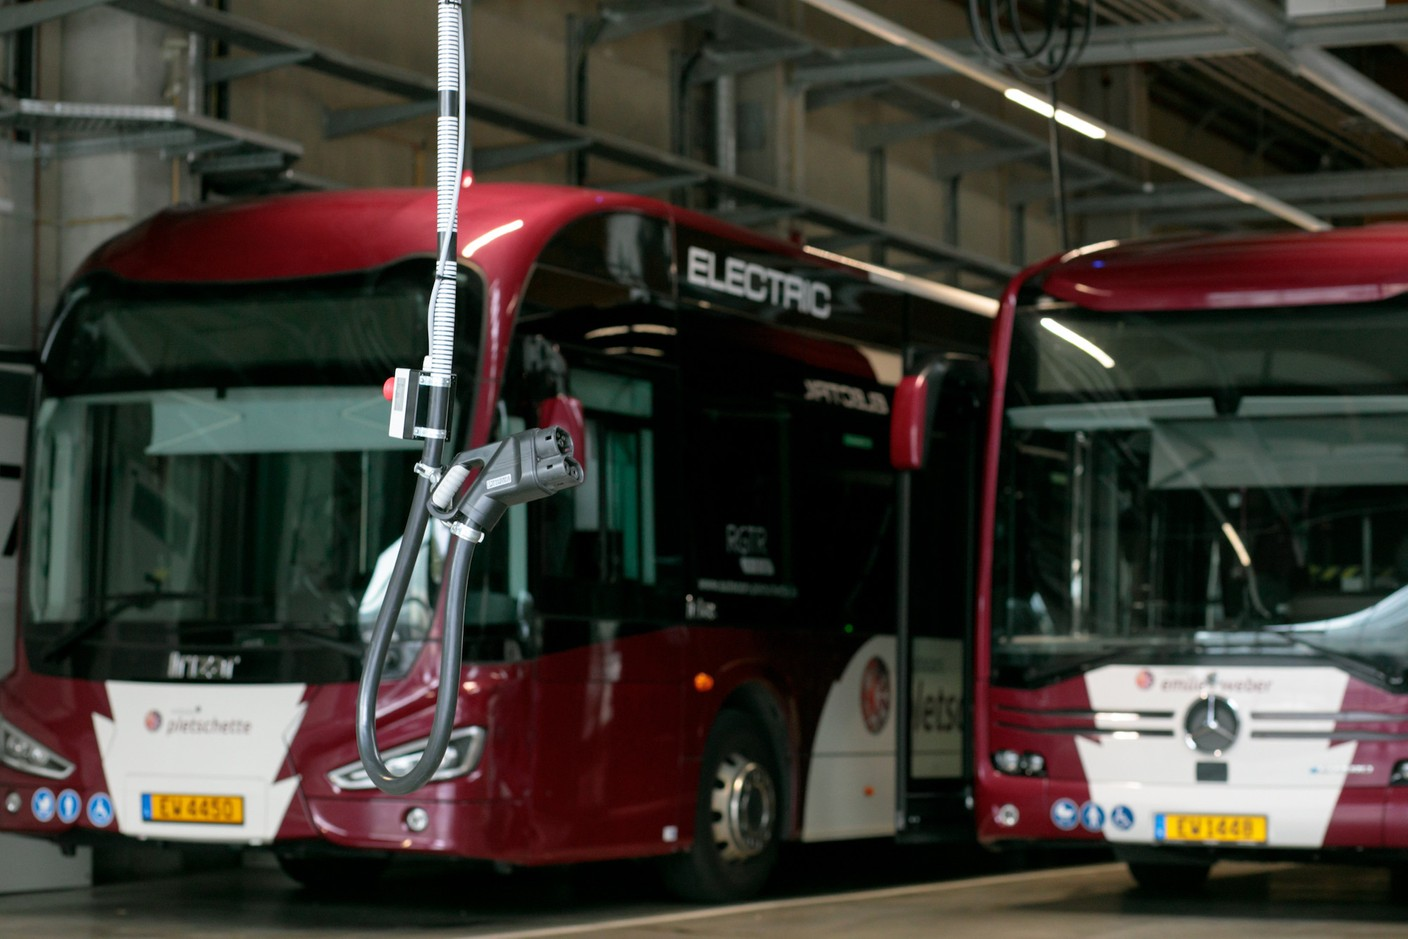 The challenge, after dark, is to charge and maintain all the electric buses. (Photo: Matic Zorman/Maison Moderne)